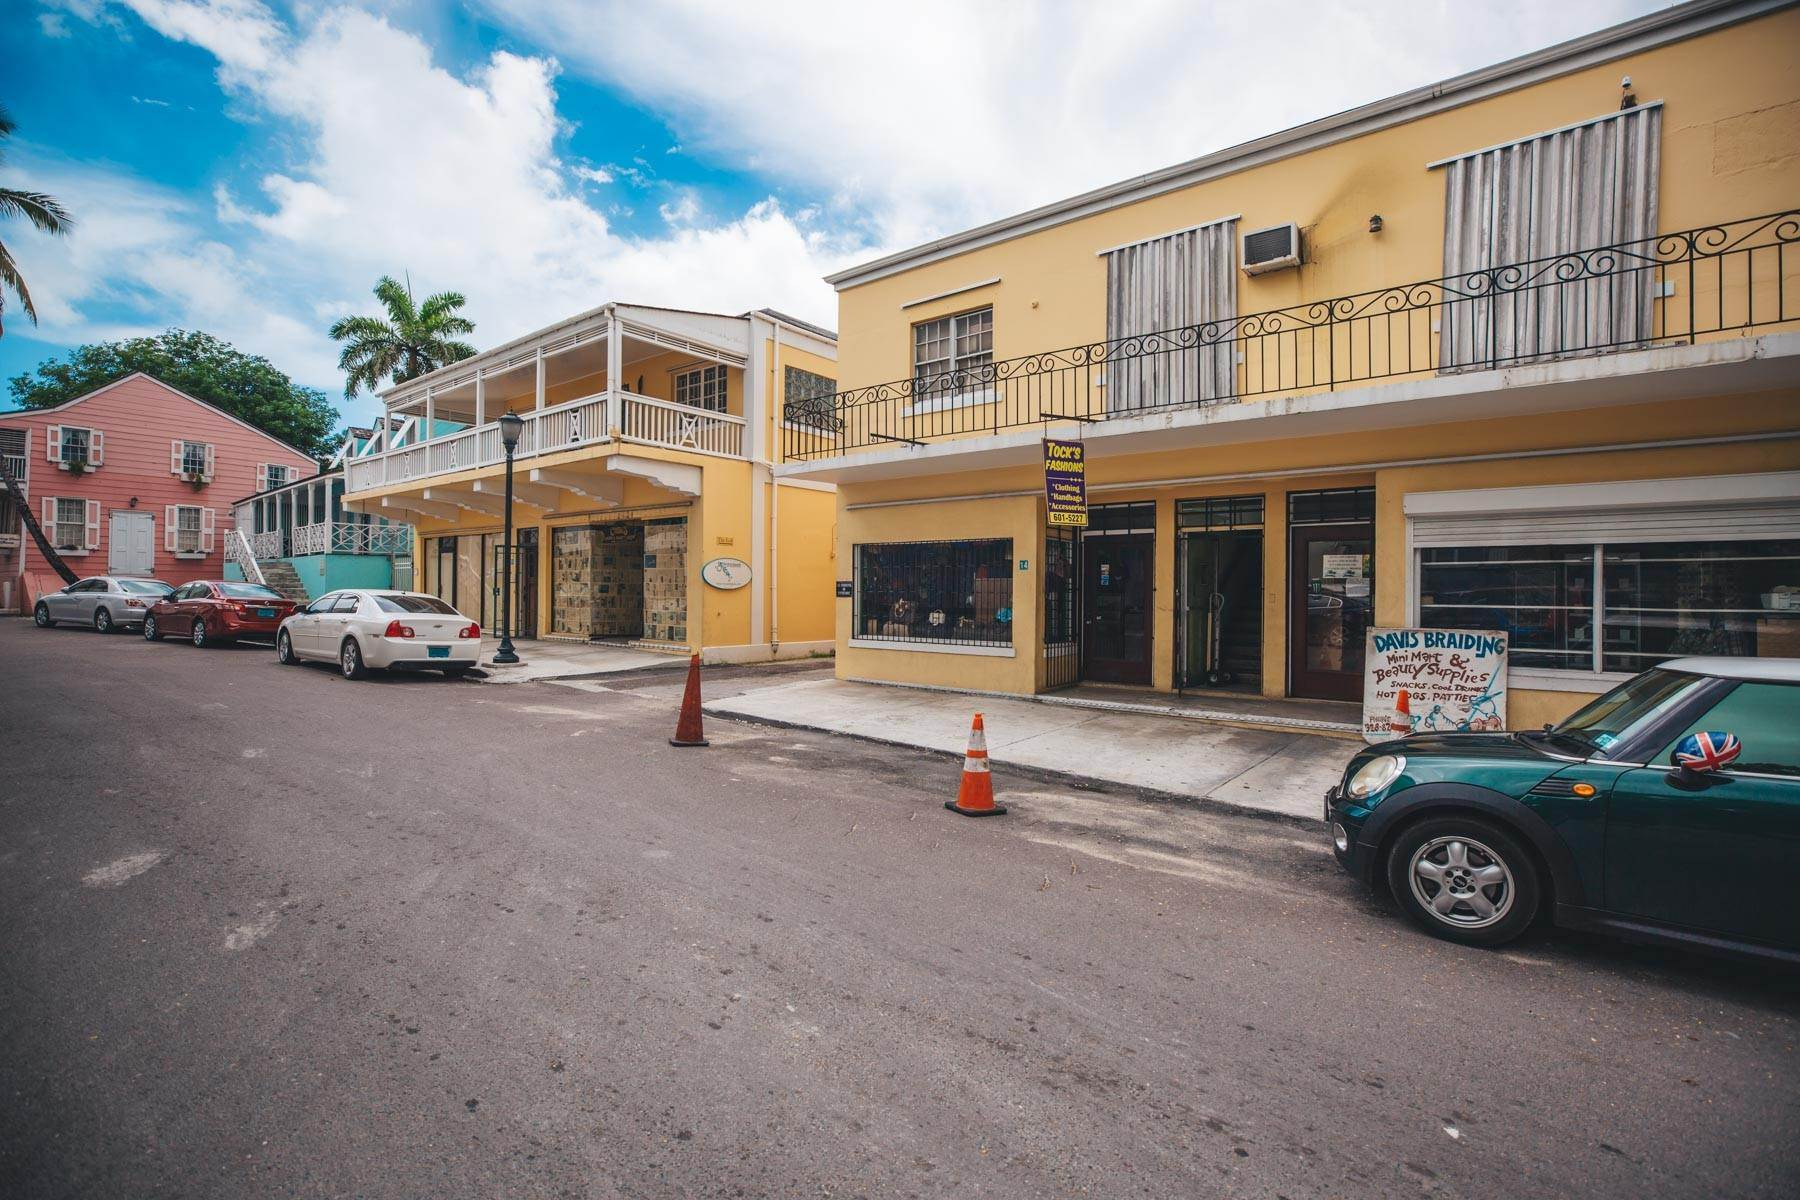 Commercial for Sale at Market St. Commercial Property - MLS 43736 Bay Street, Nassau And Paradise Island, Bahamas